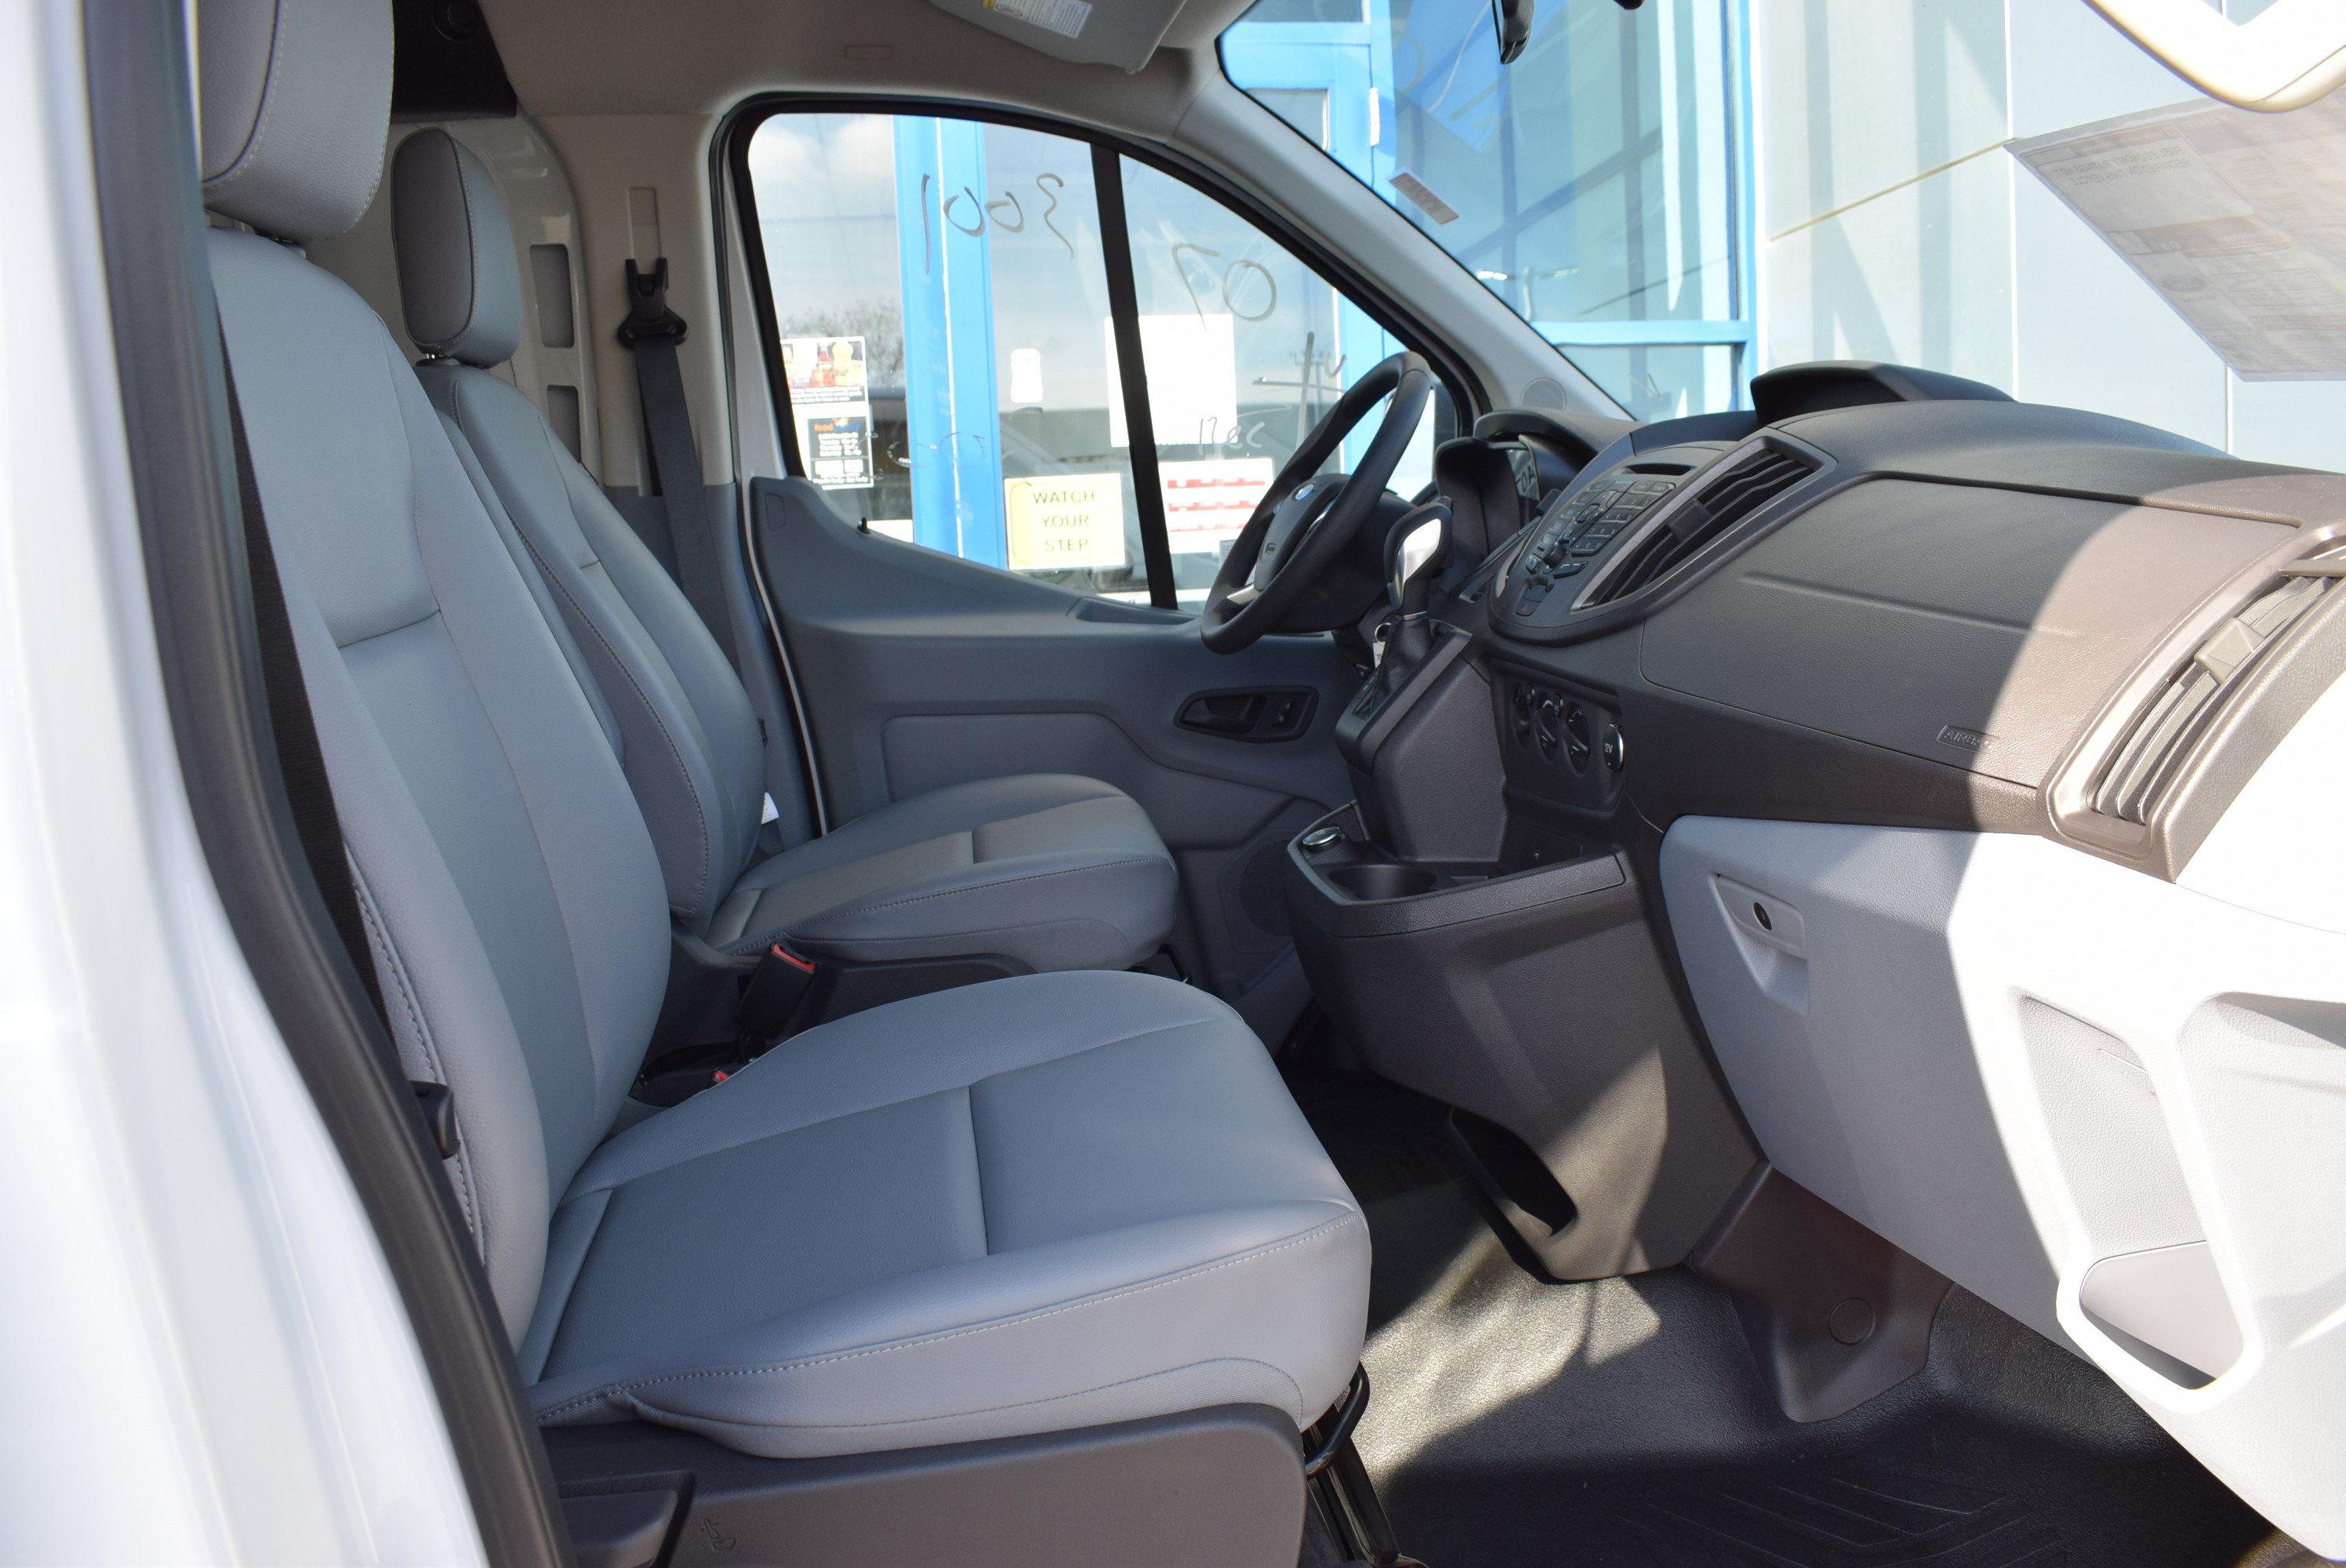 2019 Transit 150 Low Roof 4x2,  Empty Cargo Van #T19054 - photo 18